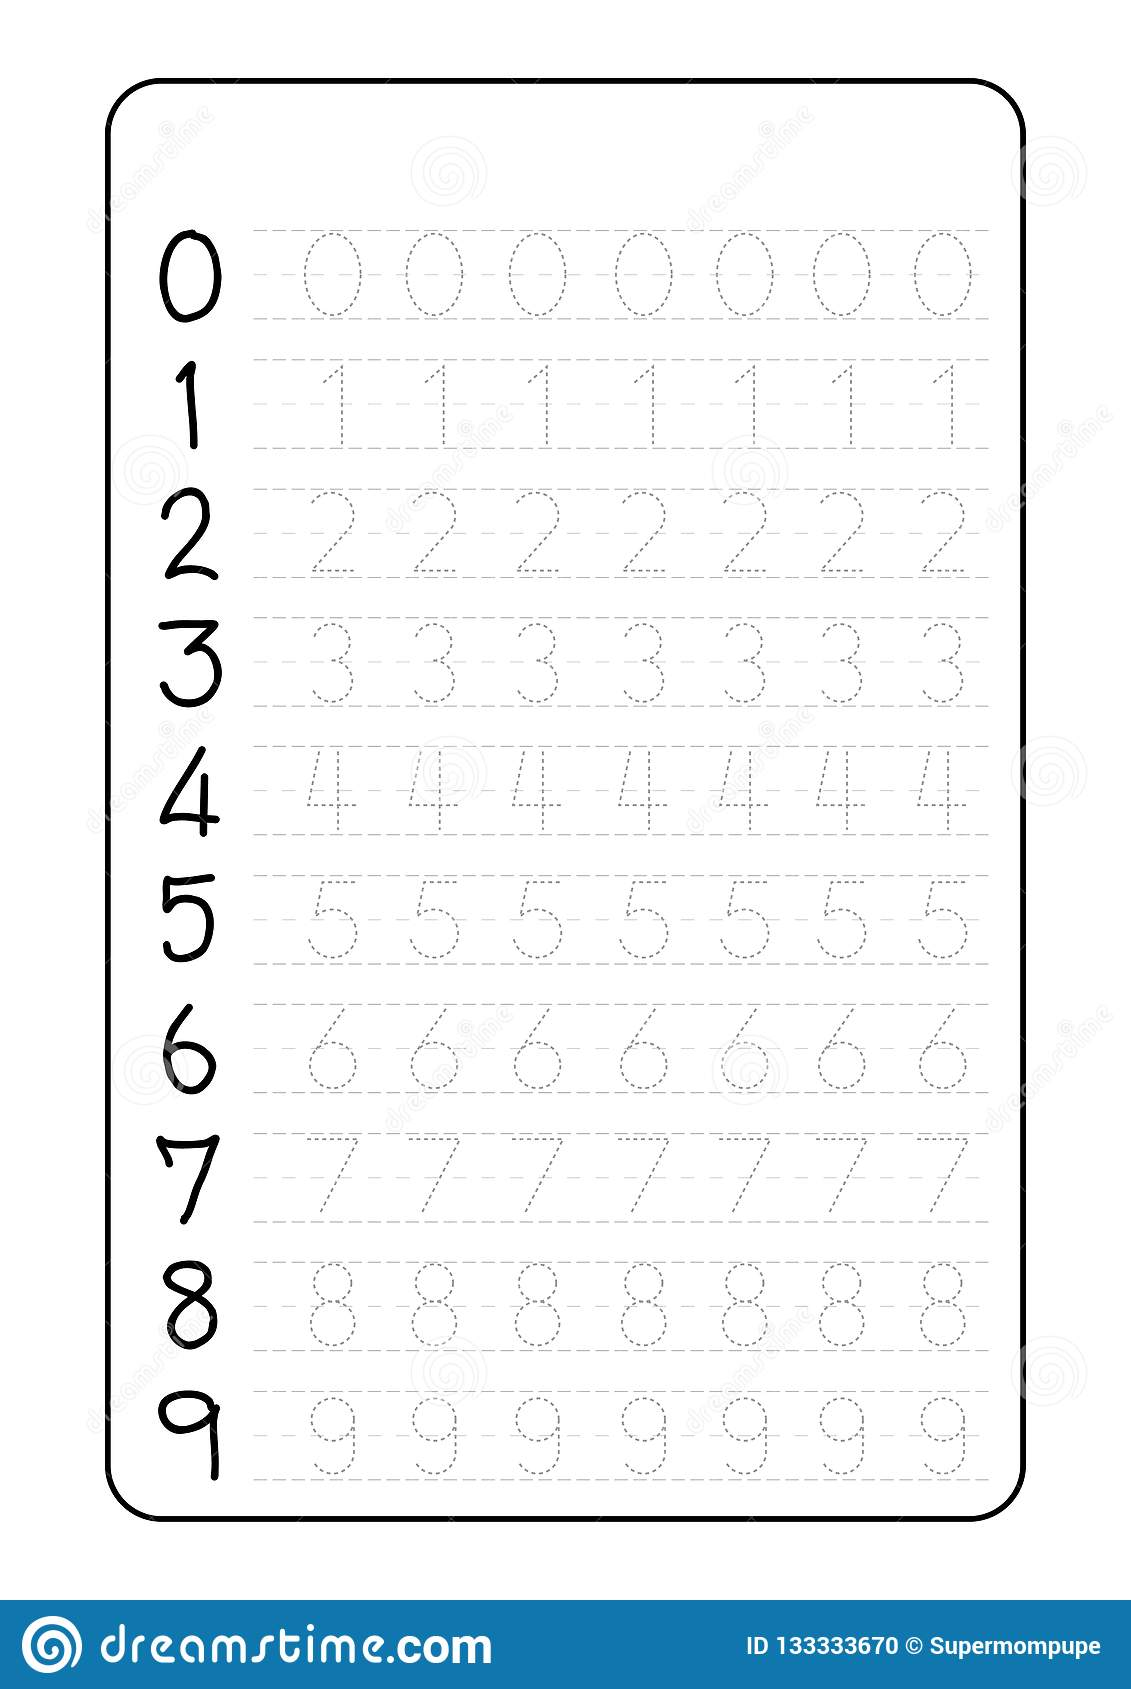 Alphabet Letters Tracing Worksheet With Alphabet Letters Number Formation Activity Sheets For